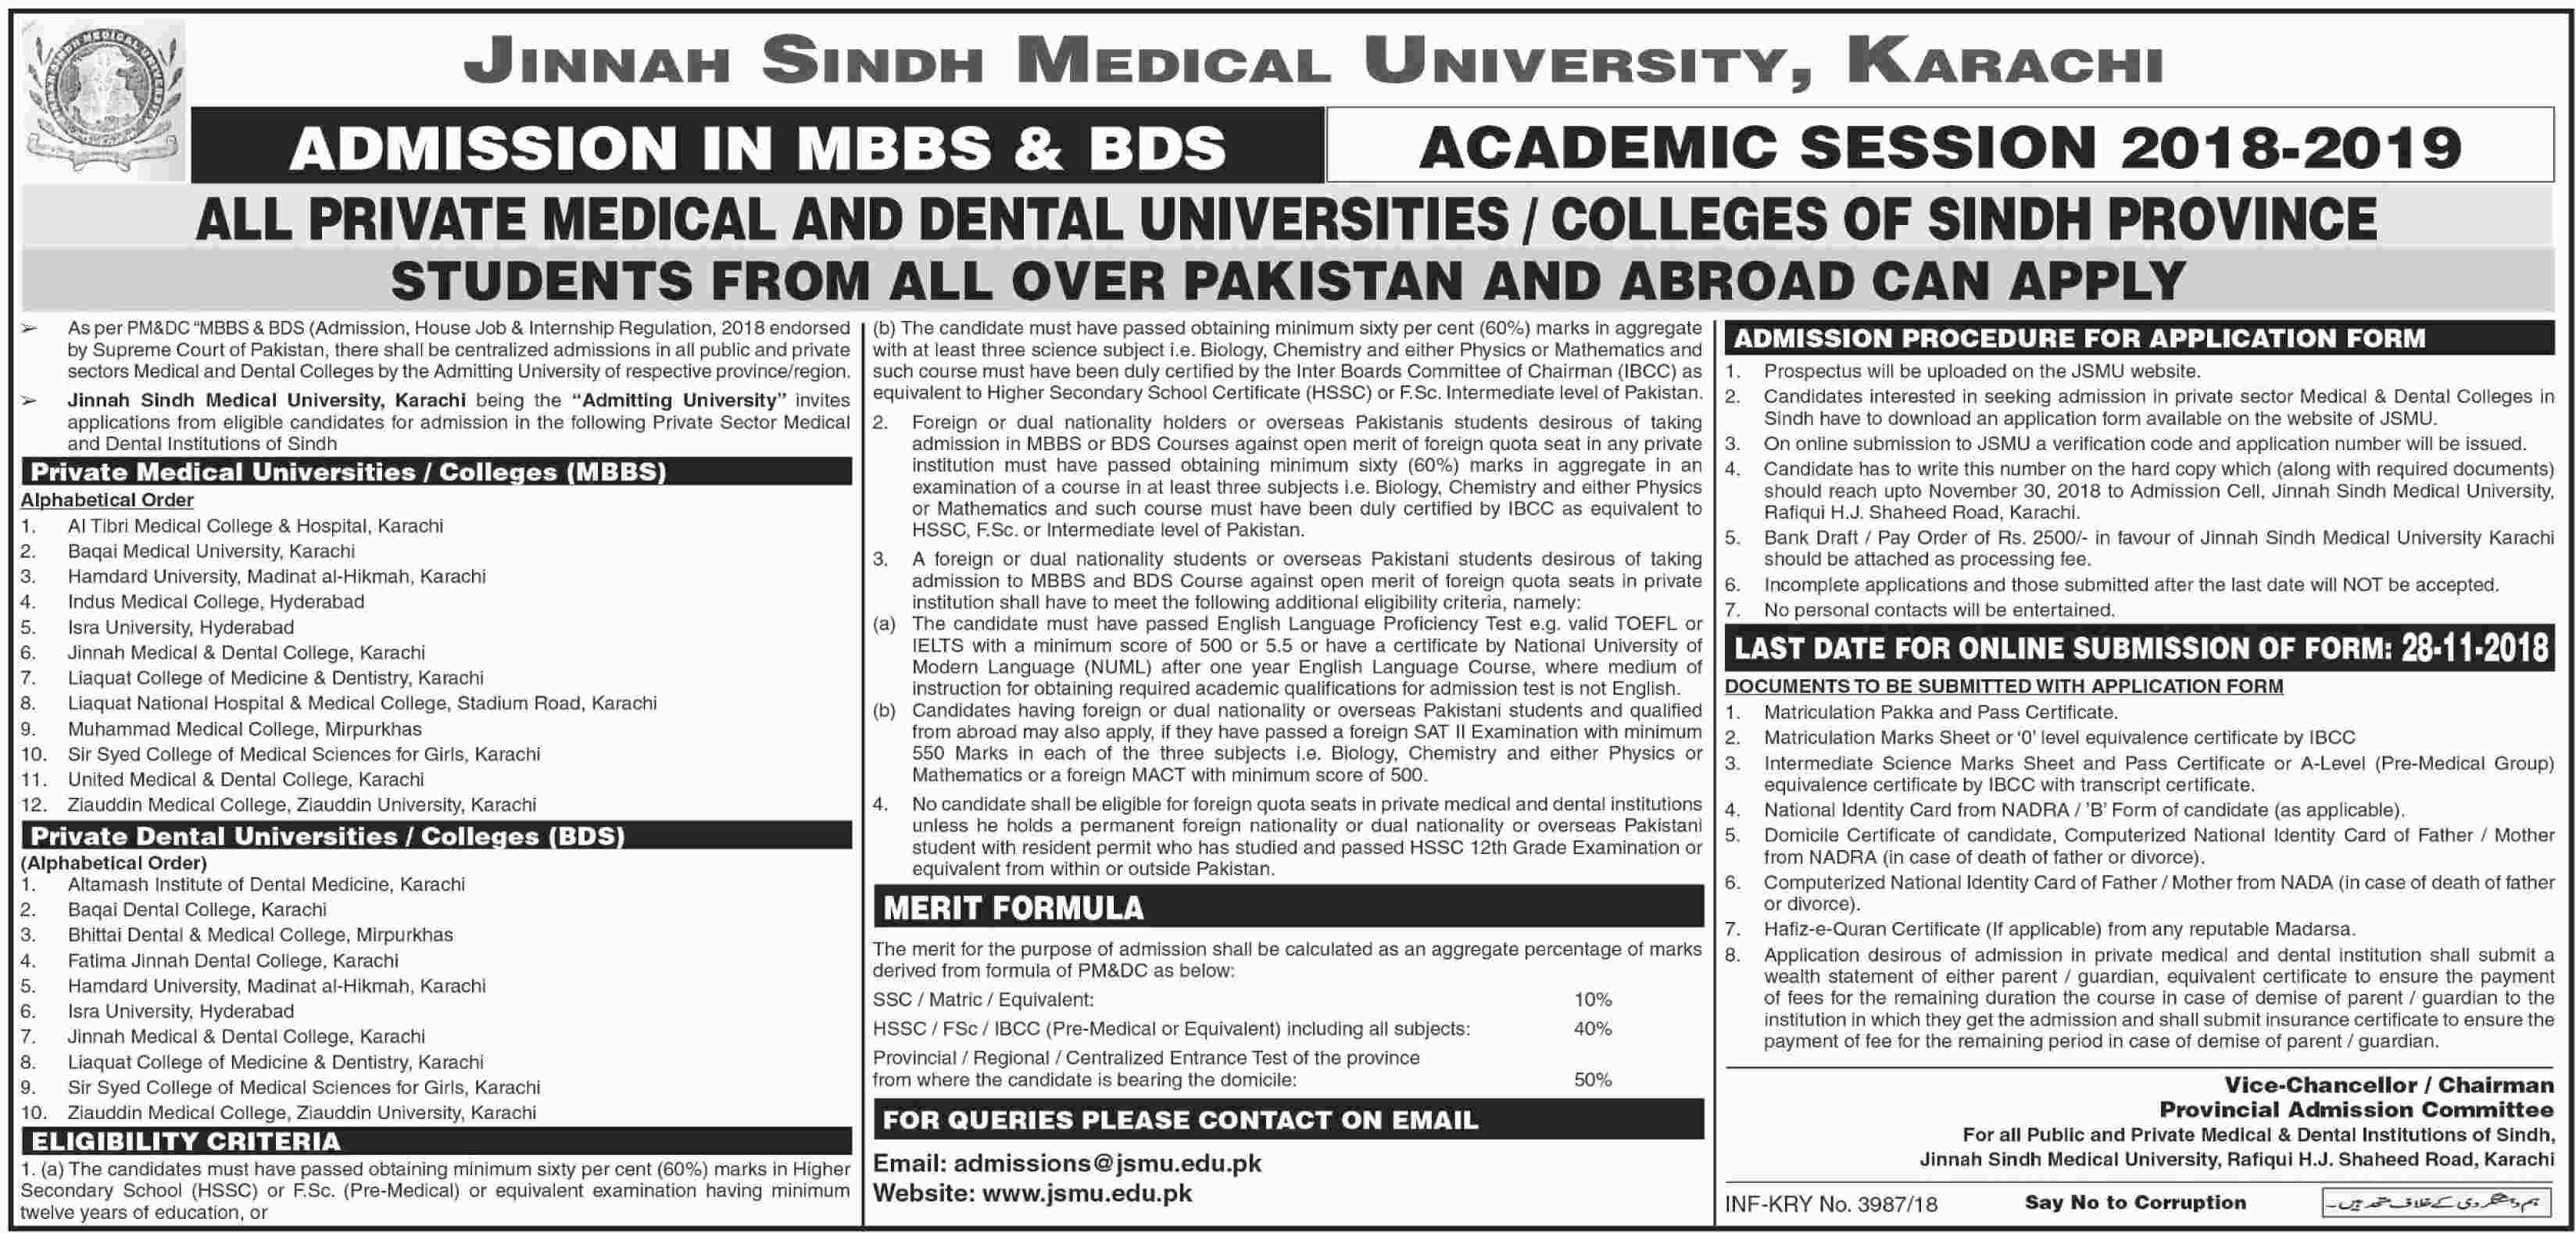 JSMU announces admission 2018 for Private Medical and Dental